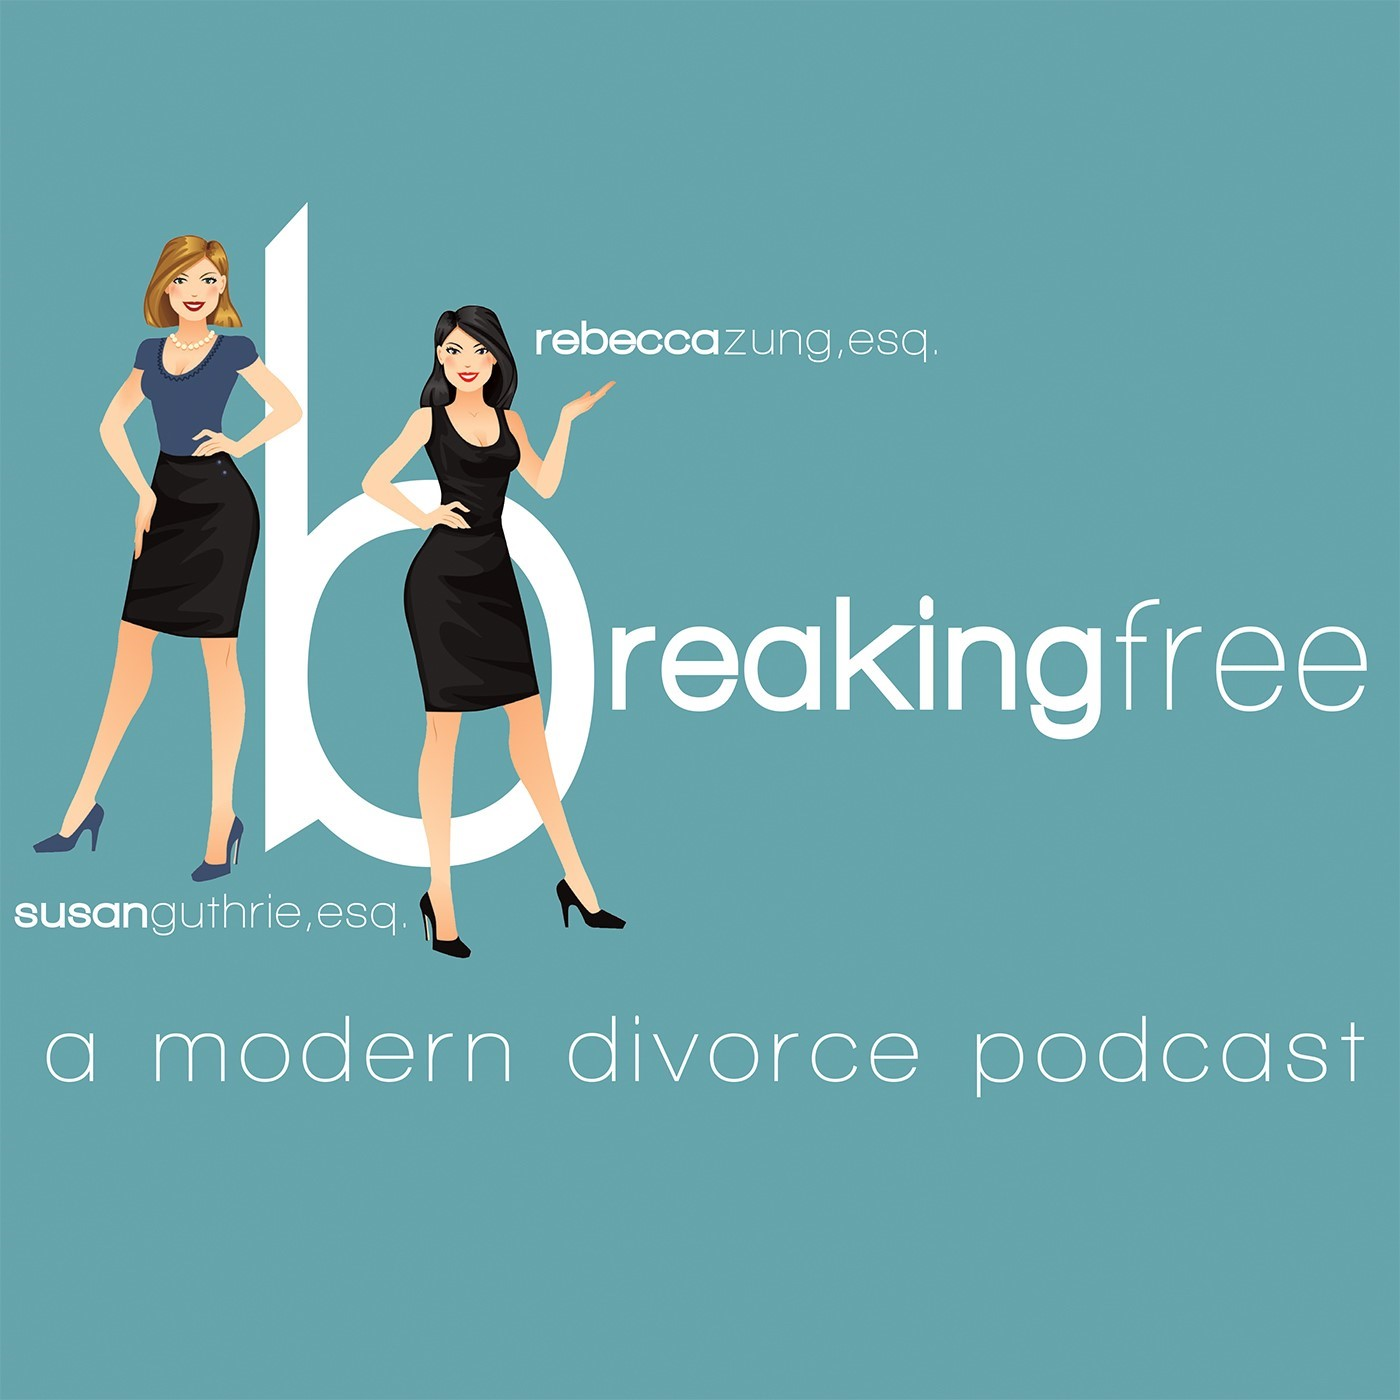 """Relocation, Relocation, Relocation:  How To Move Away With Your Kids in Divorce"" on Breaking Free: A Modern Divorce Podcast #148"